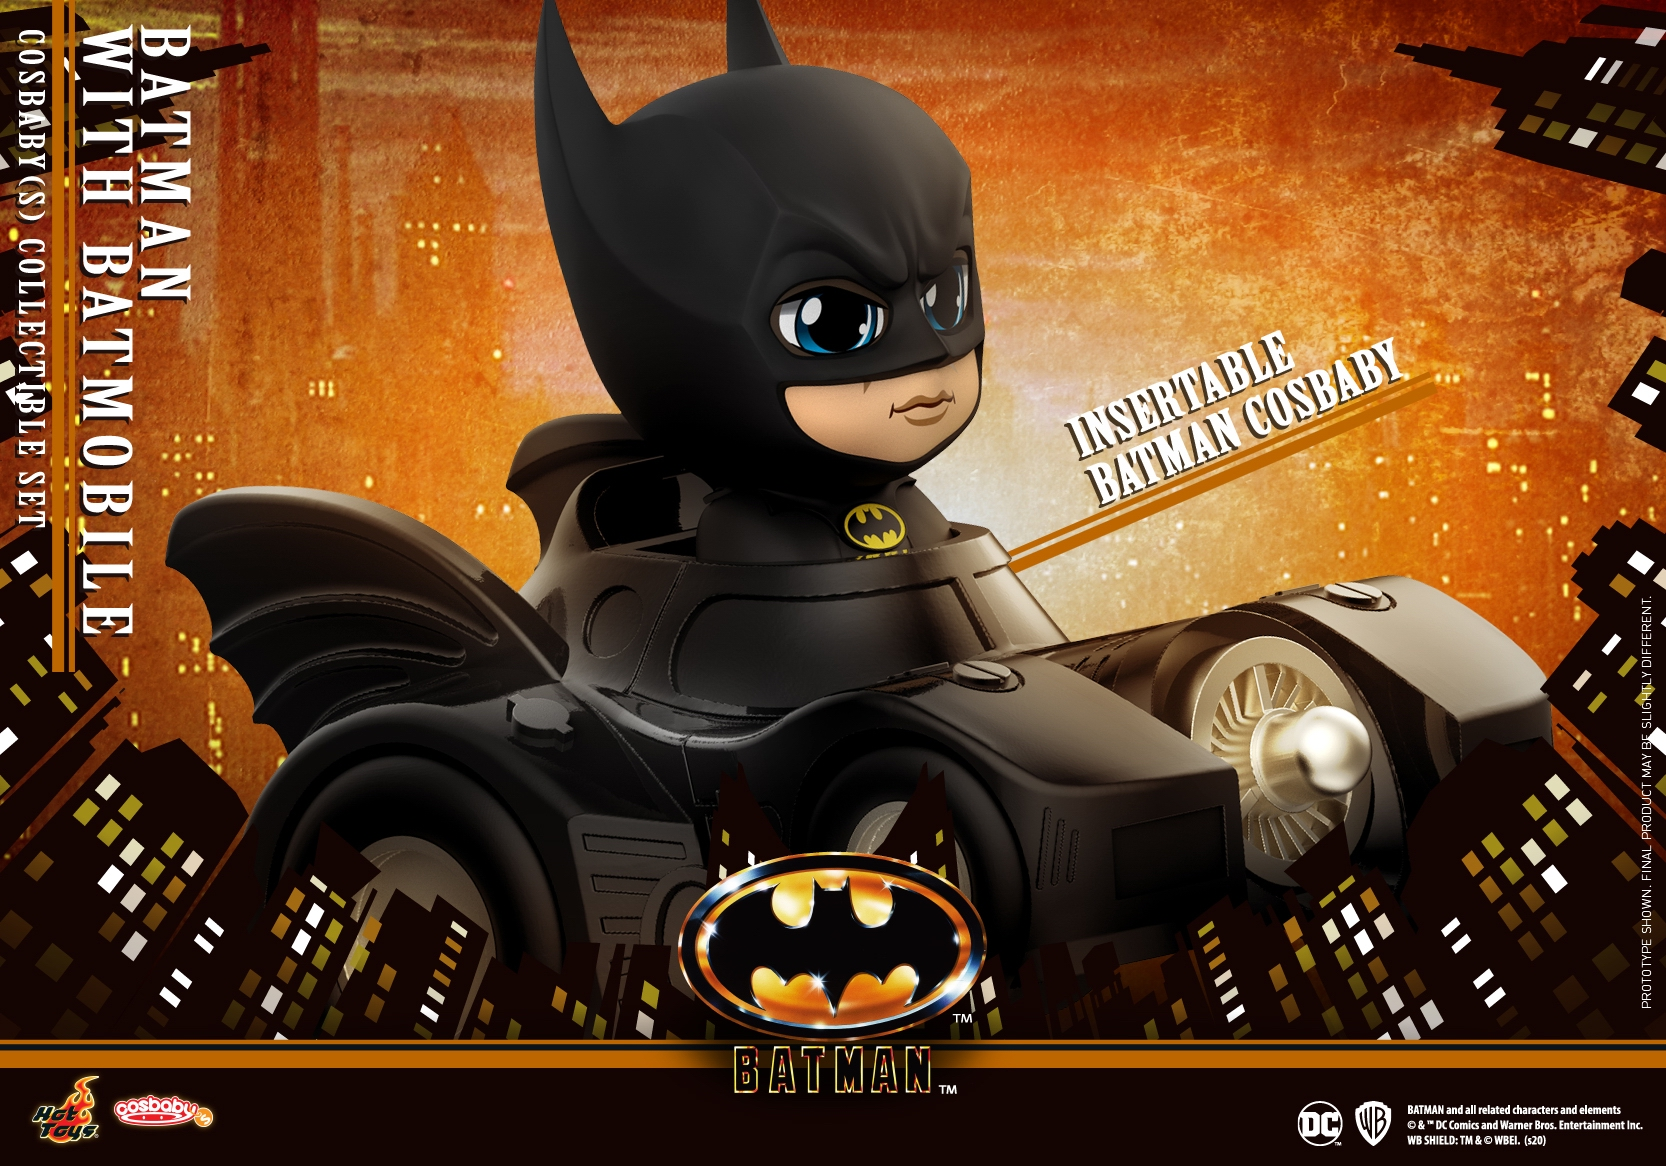 Hot Toys - Batman (1989) - Batman with Batmobile Cosbaby_PR2.jpg